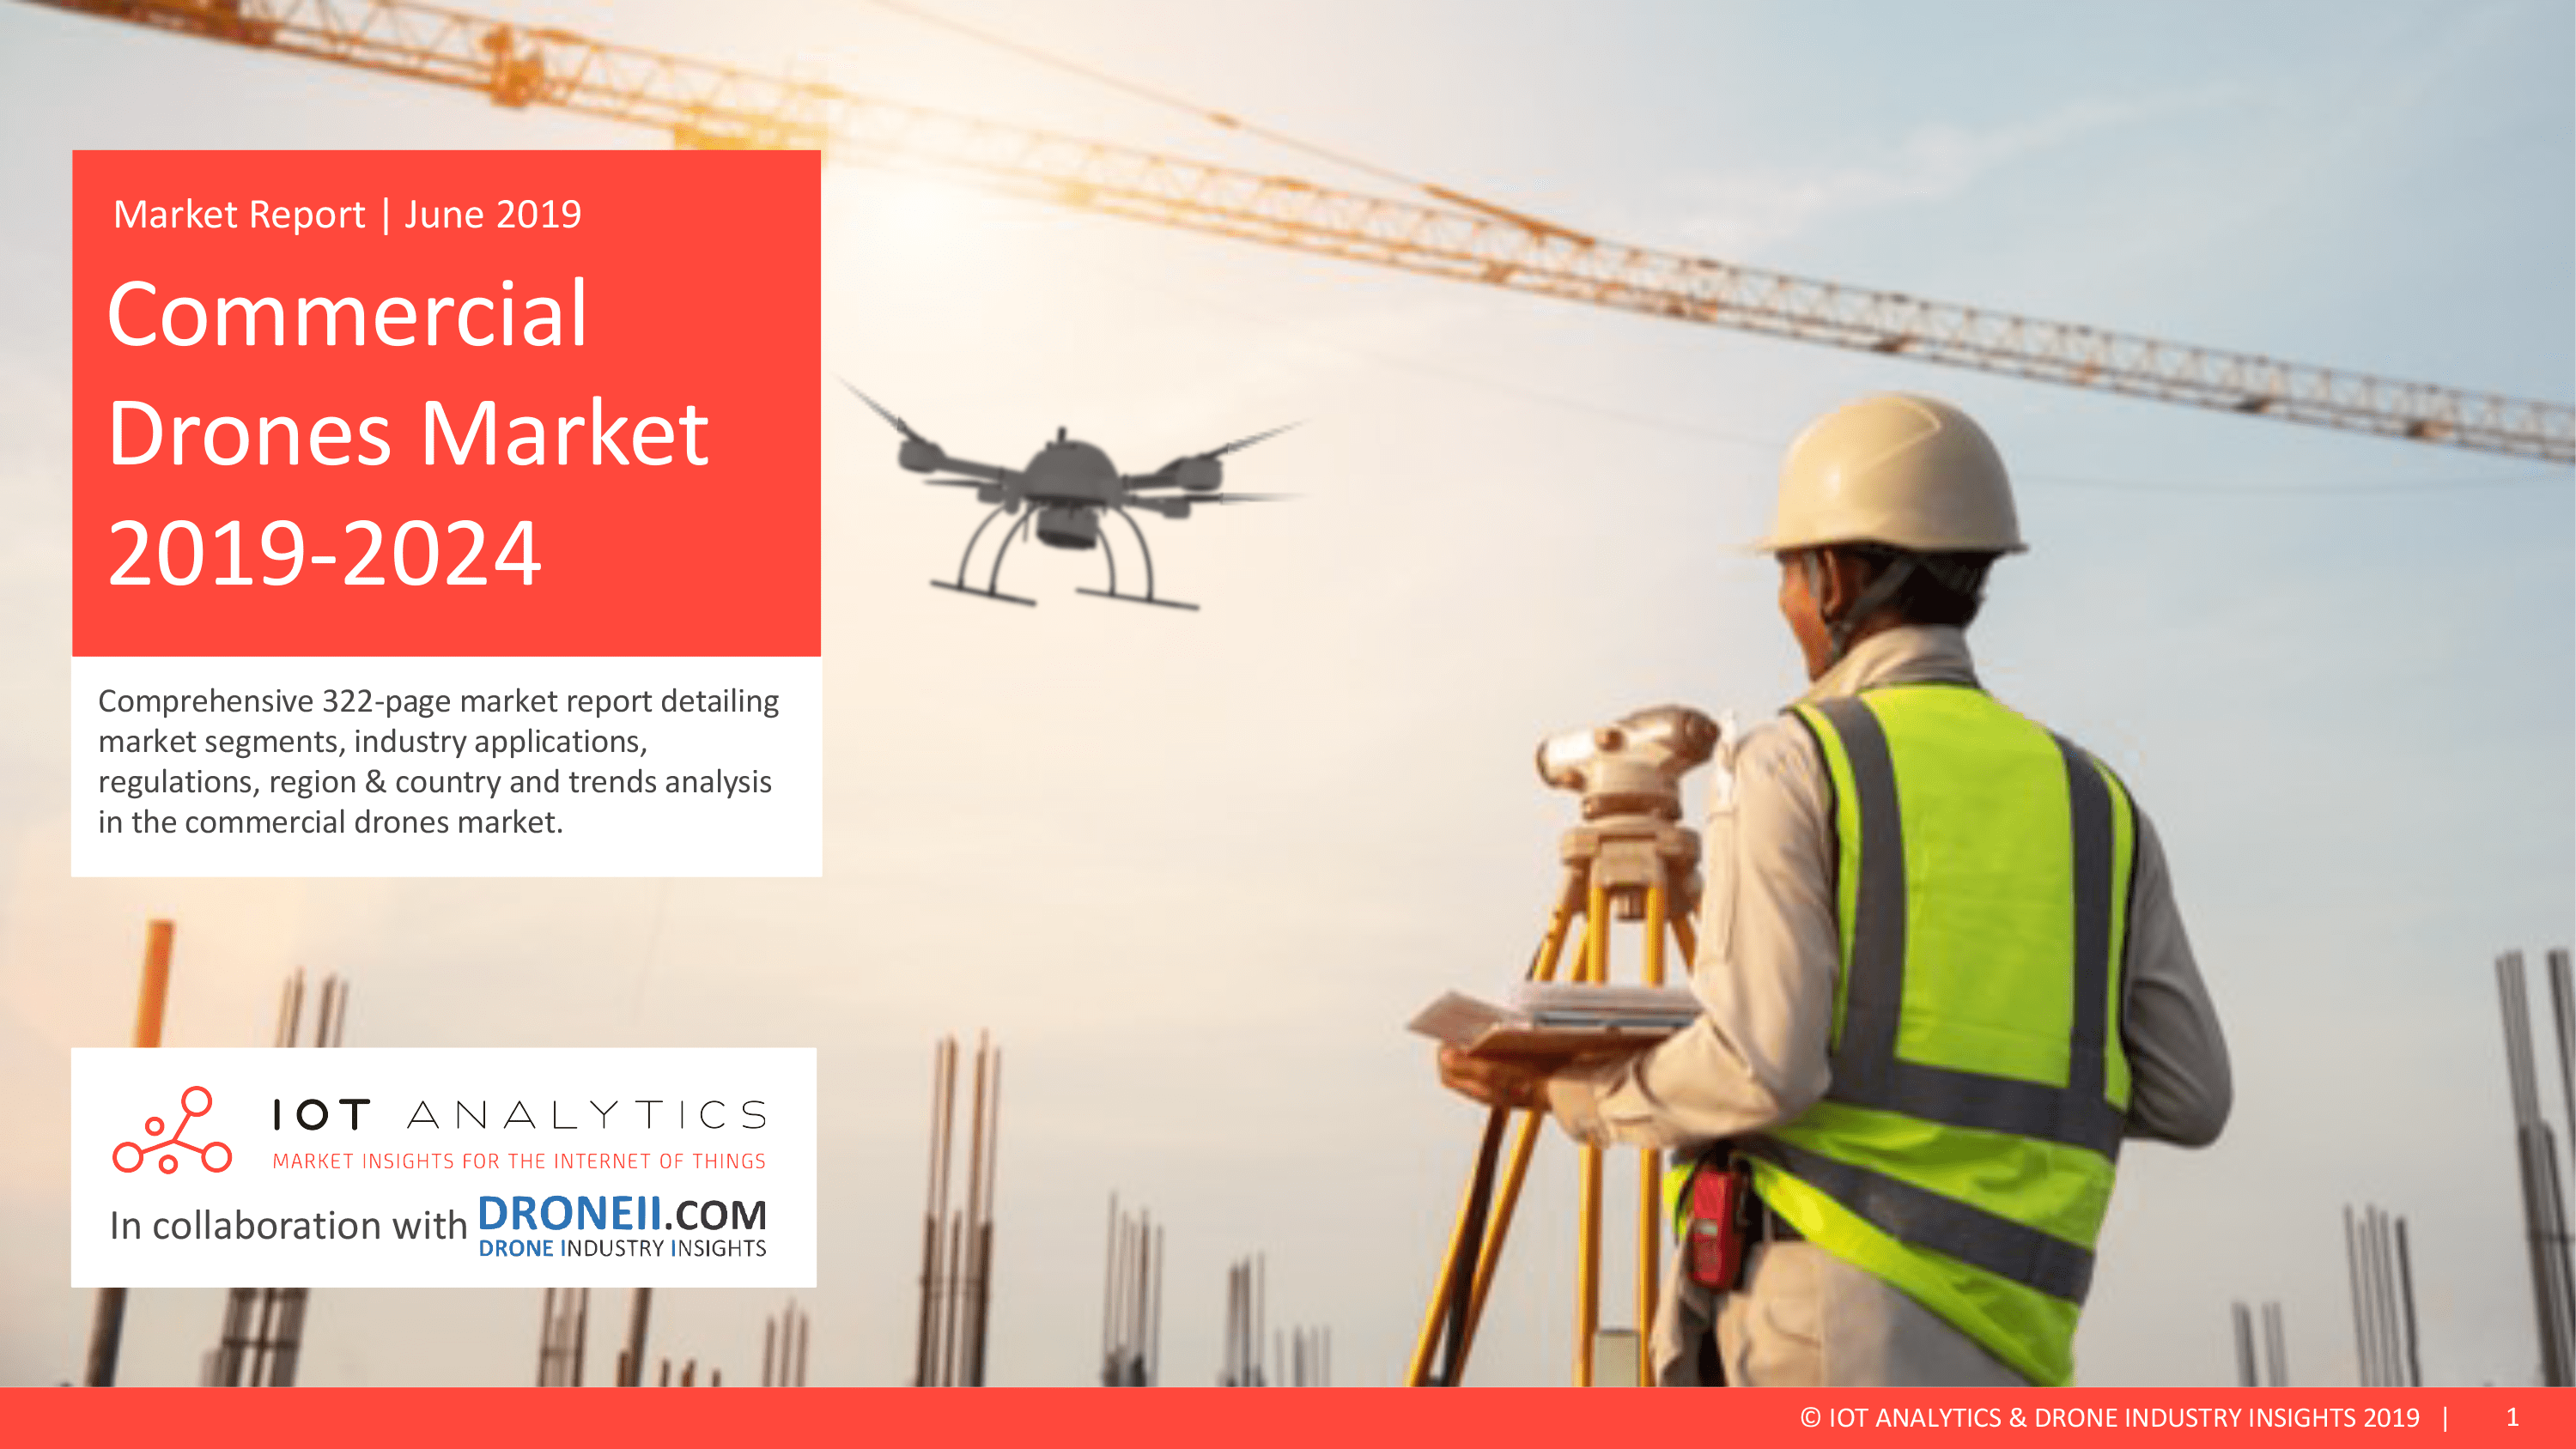 Commercial Drones Market Report 2019 - 2024 - Coverpage  - Commercial Drone Market Report 2019 2024 cover min - A $43B opportunity by 2024